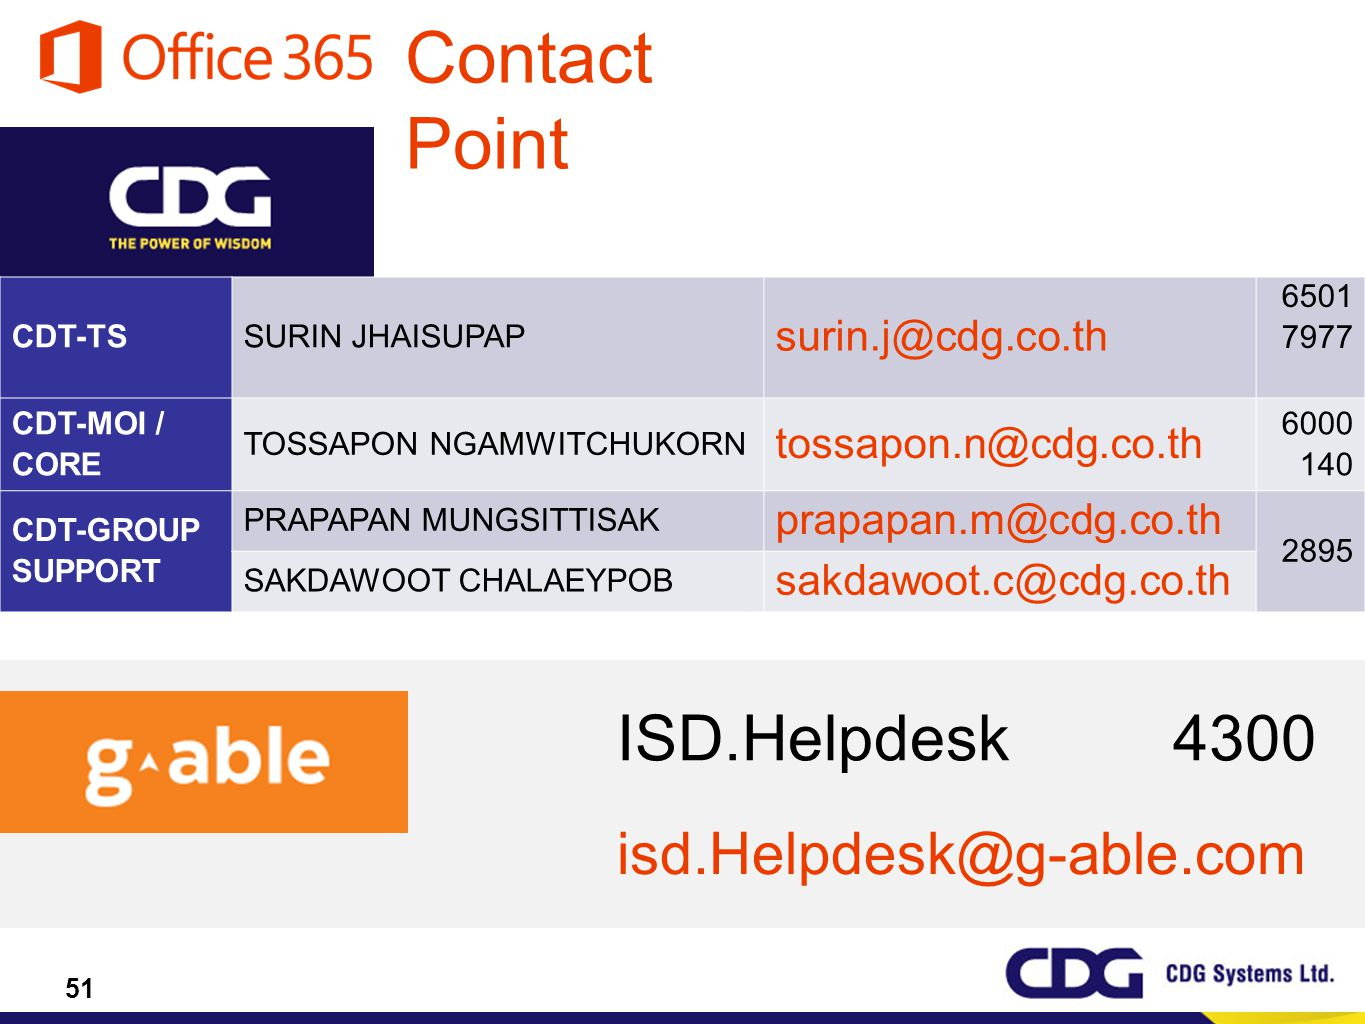 Contact Point ISD.Helpdesk 4300 isd.Helpdesk@g-able.com